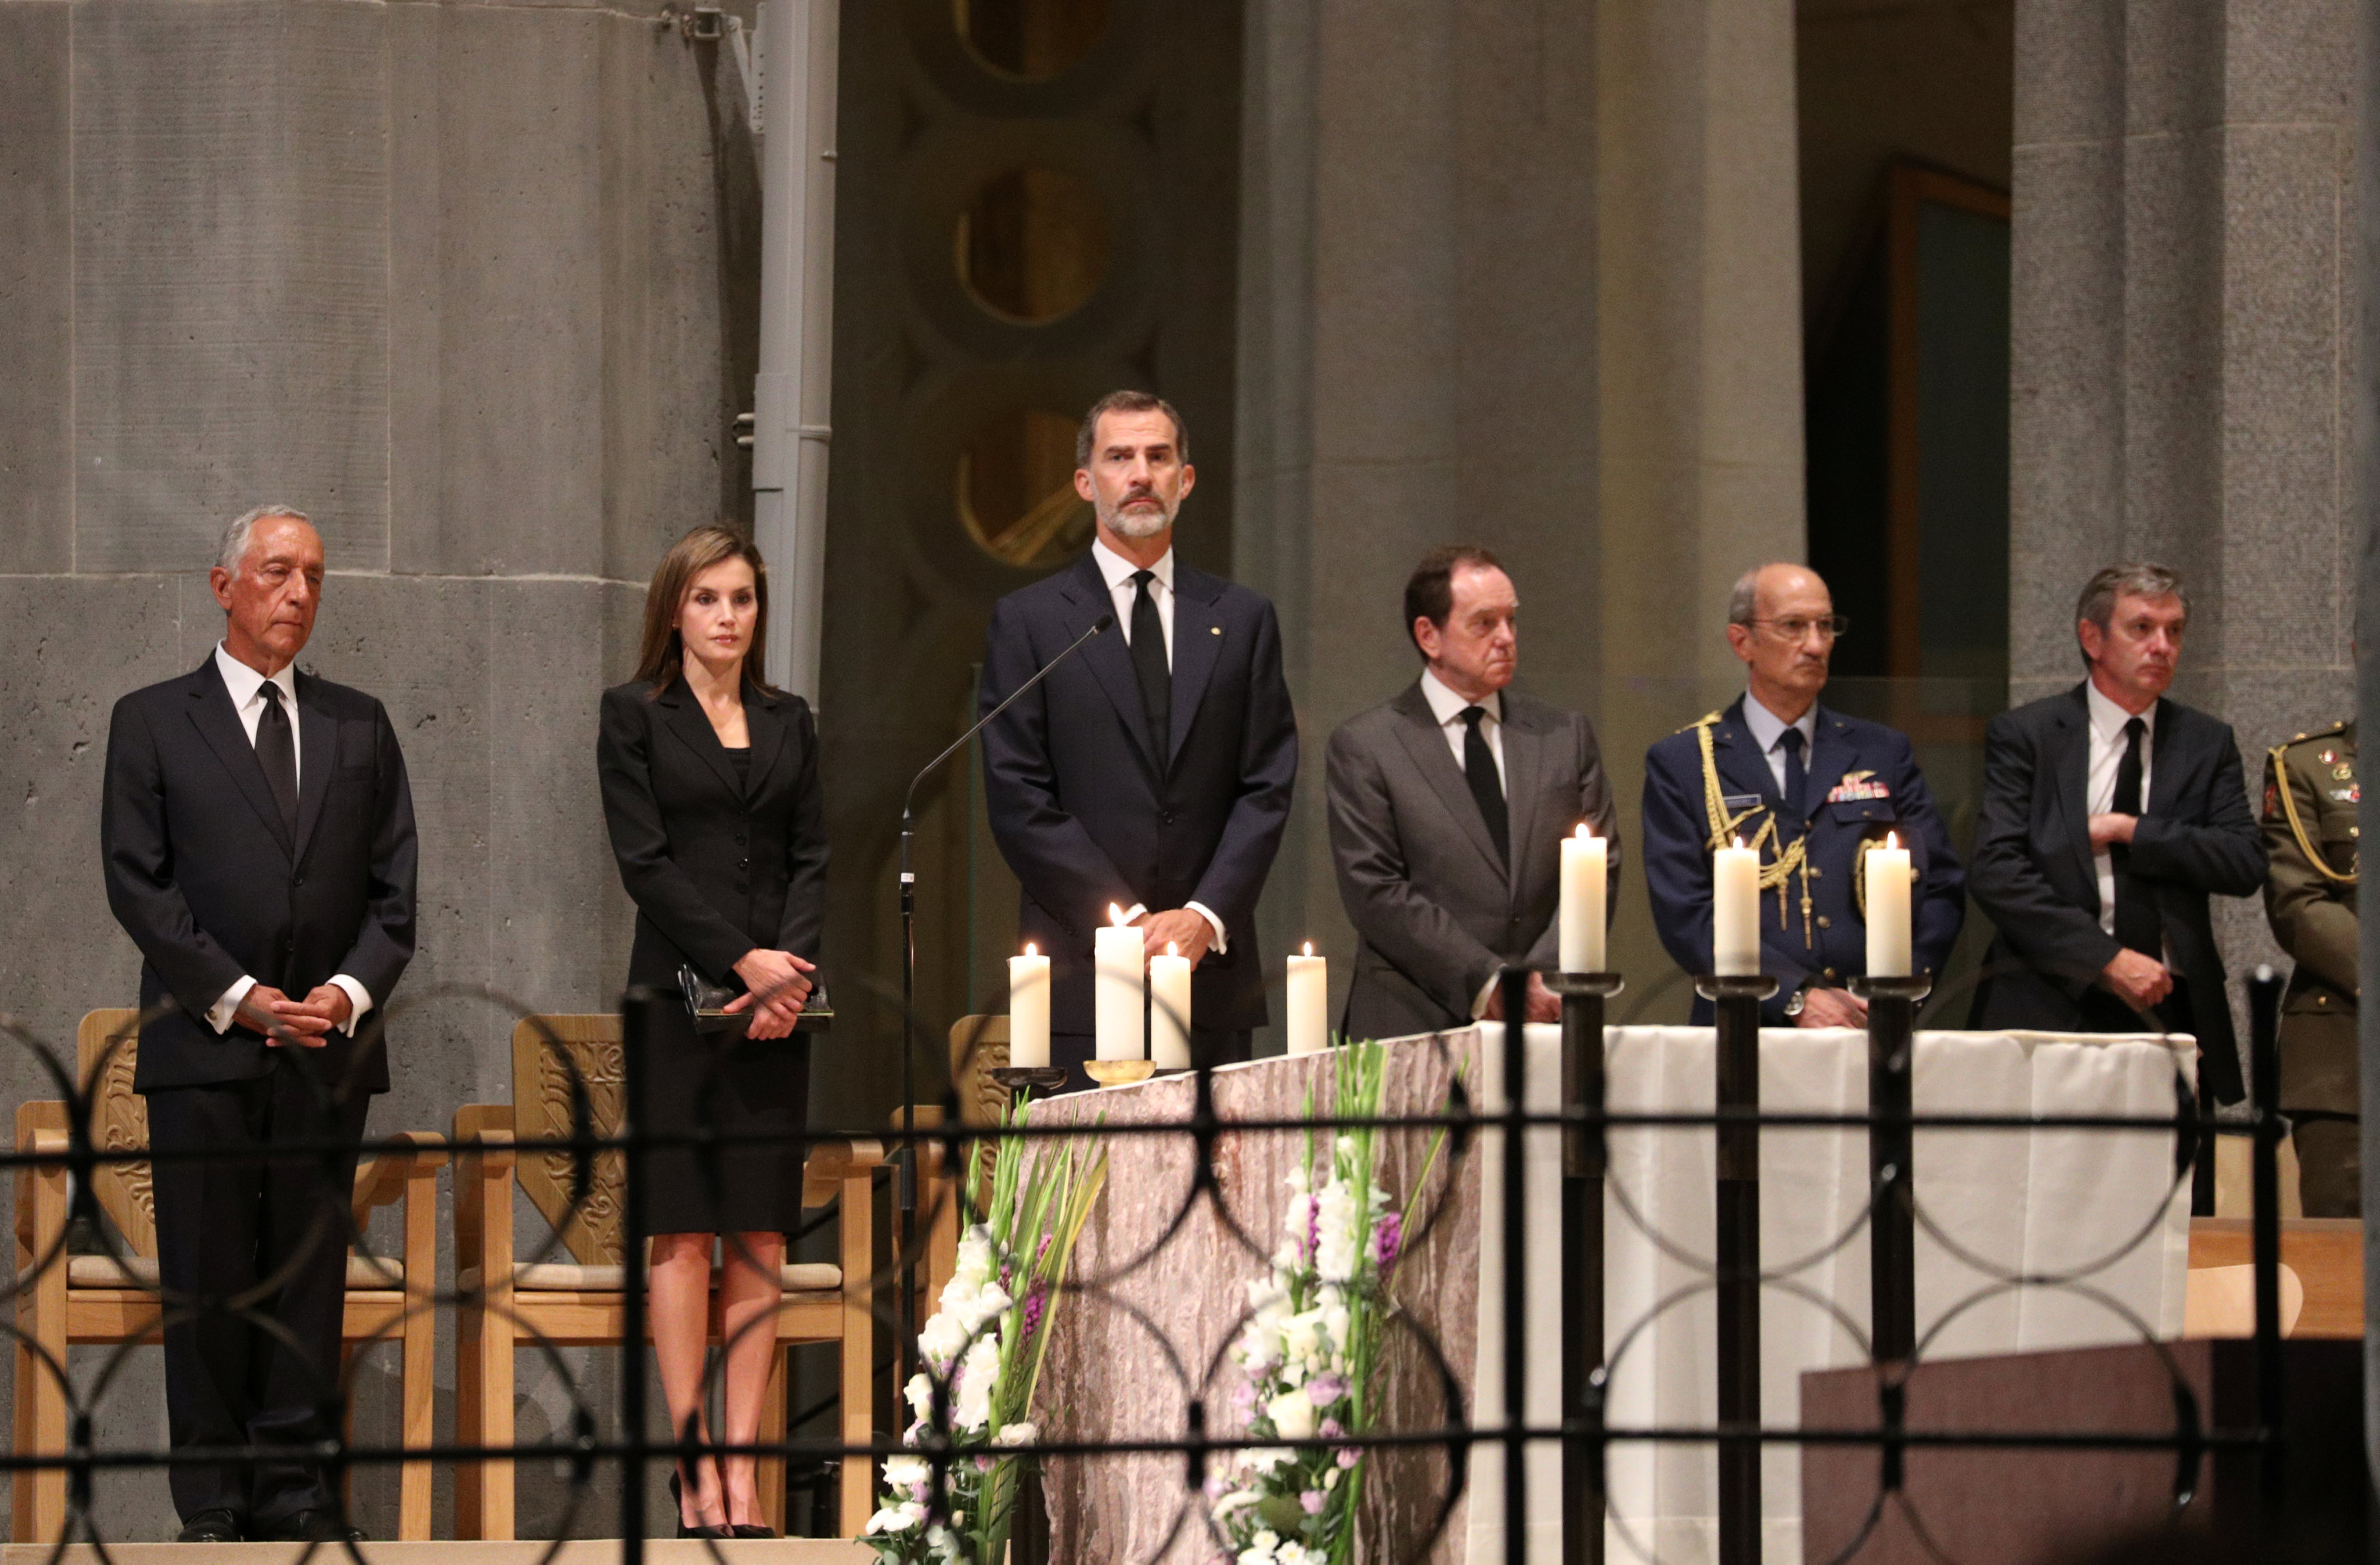 Portuguese president Marcelo Rebelo de Sousa and King Felipe of Spain with his wife Letizia are seen as High mass is celebrated in the Basilica of the Sagrada Familia in memory of the victims of the van attack at Las Ramblas in Barcelona earlier this week, Spain on August 20, 2017. (REUTERS/Sergio Perez)